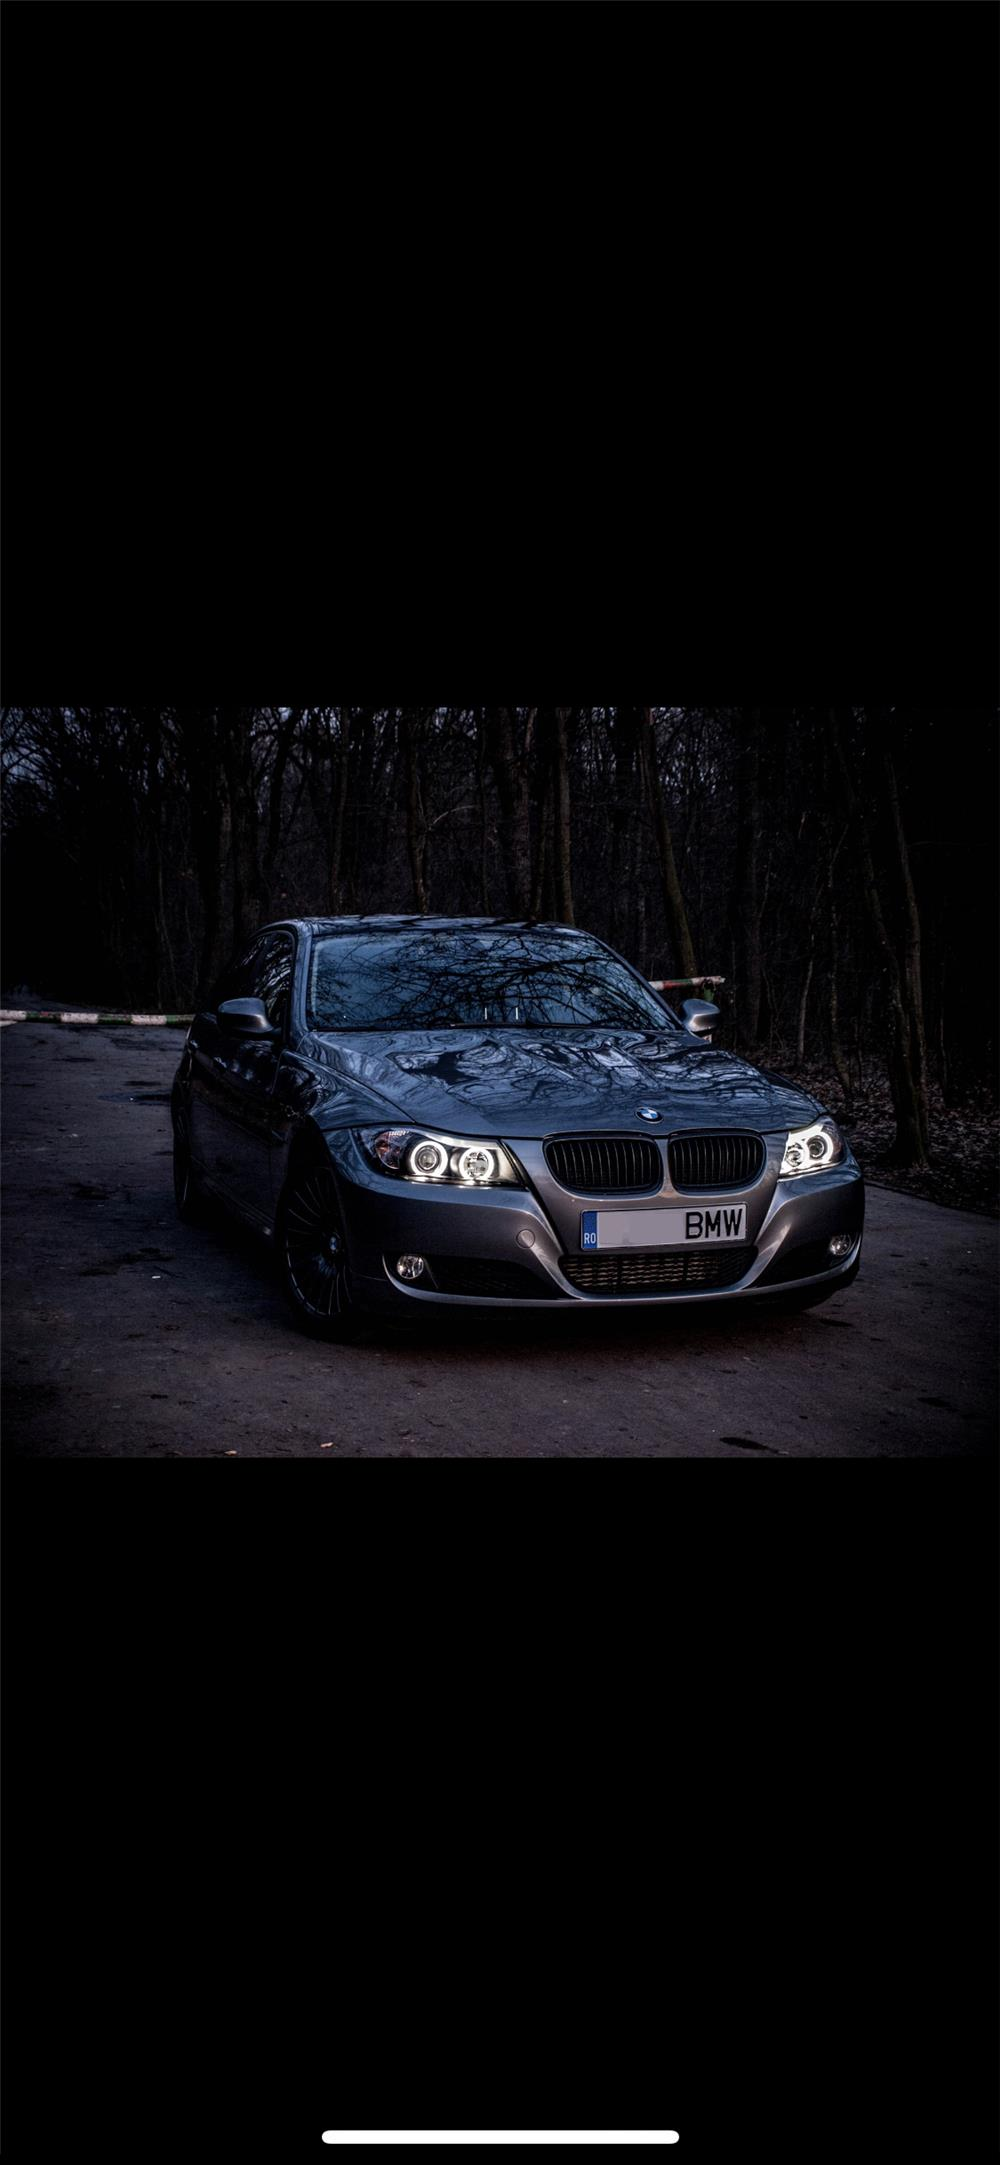 Bmw e90 - imagine 10